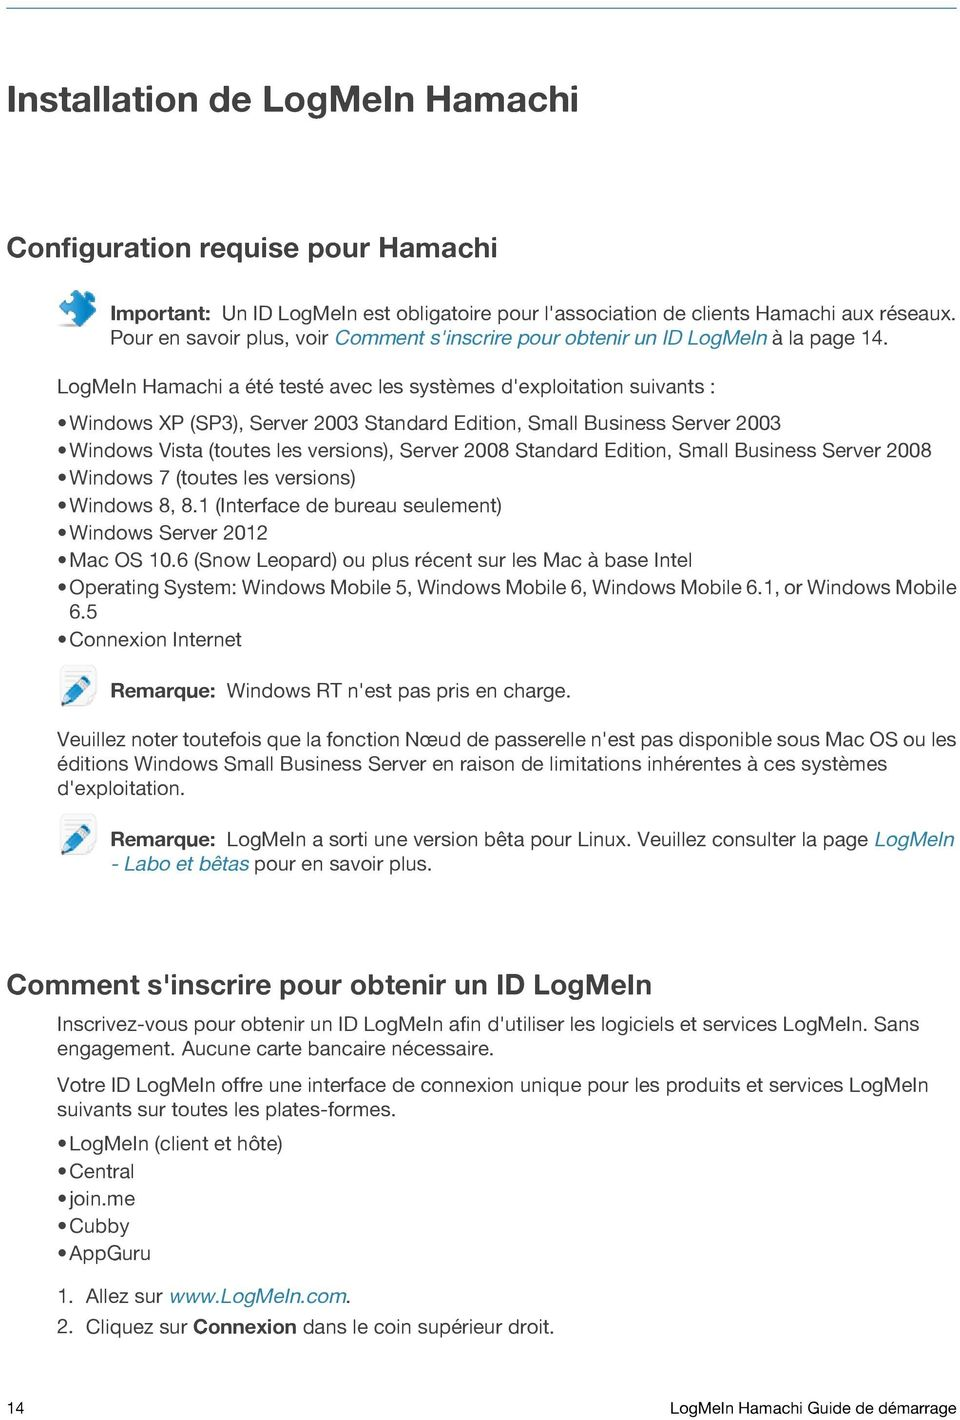 LogMeIn Hamachi a été testé avec les systèmes d'exploitation suivants : Windows XP (SP3), Server 2003 Standard Edition, Small Business Server 2003 Windows Vista (toutes les versions), Server 2008